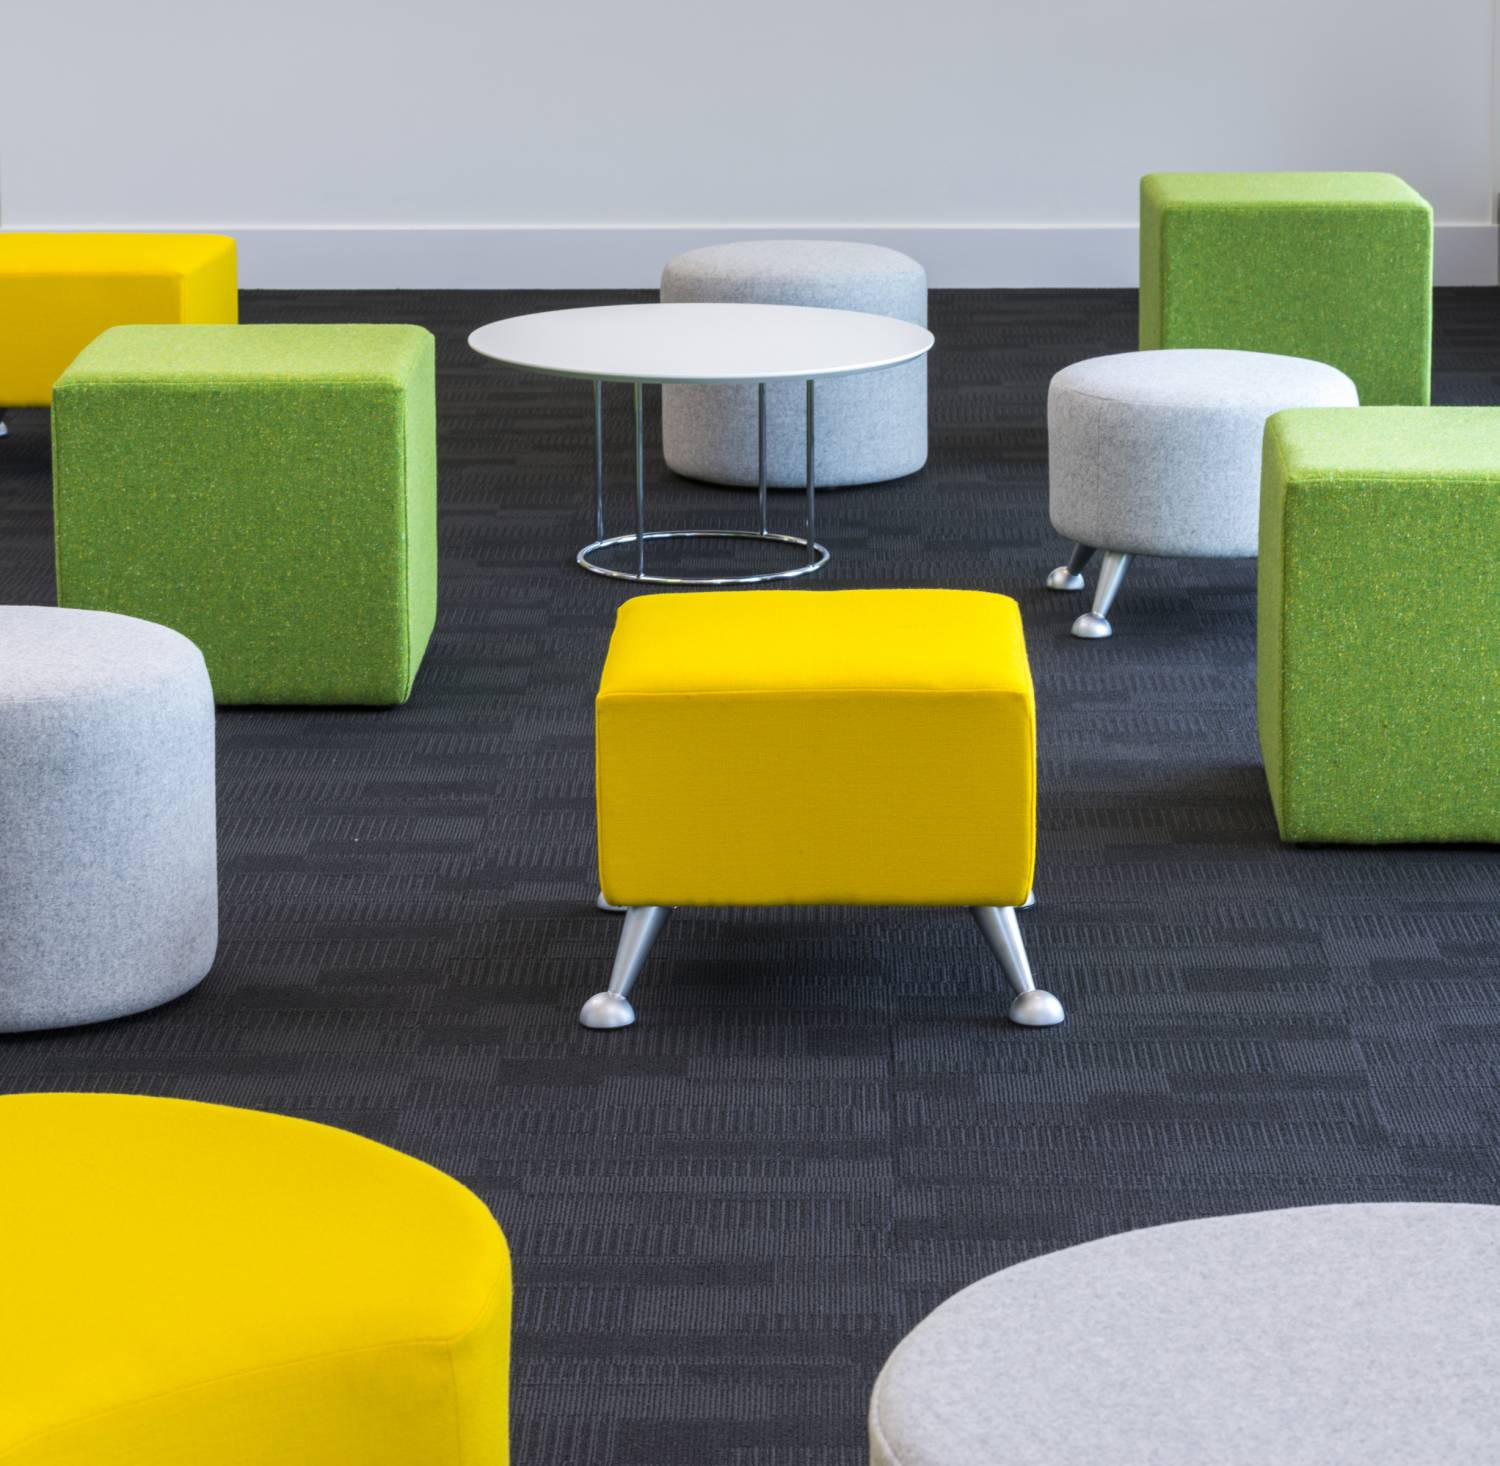 Coloured stools